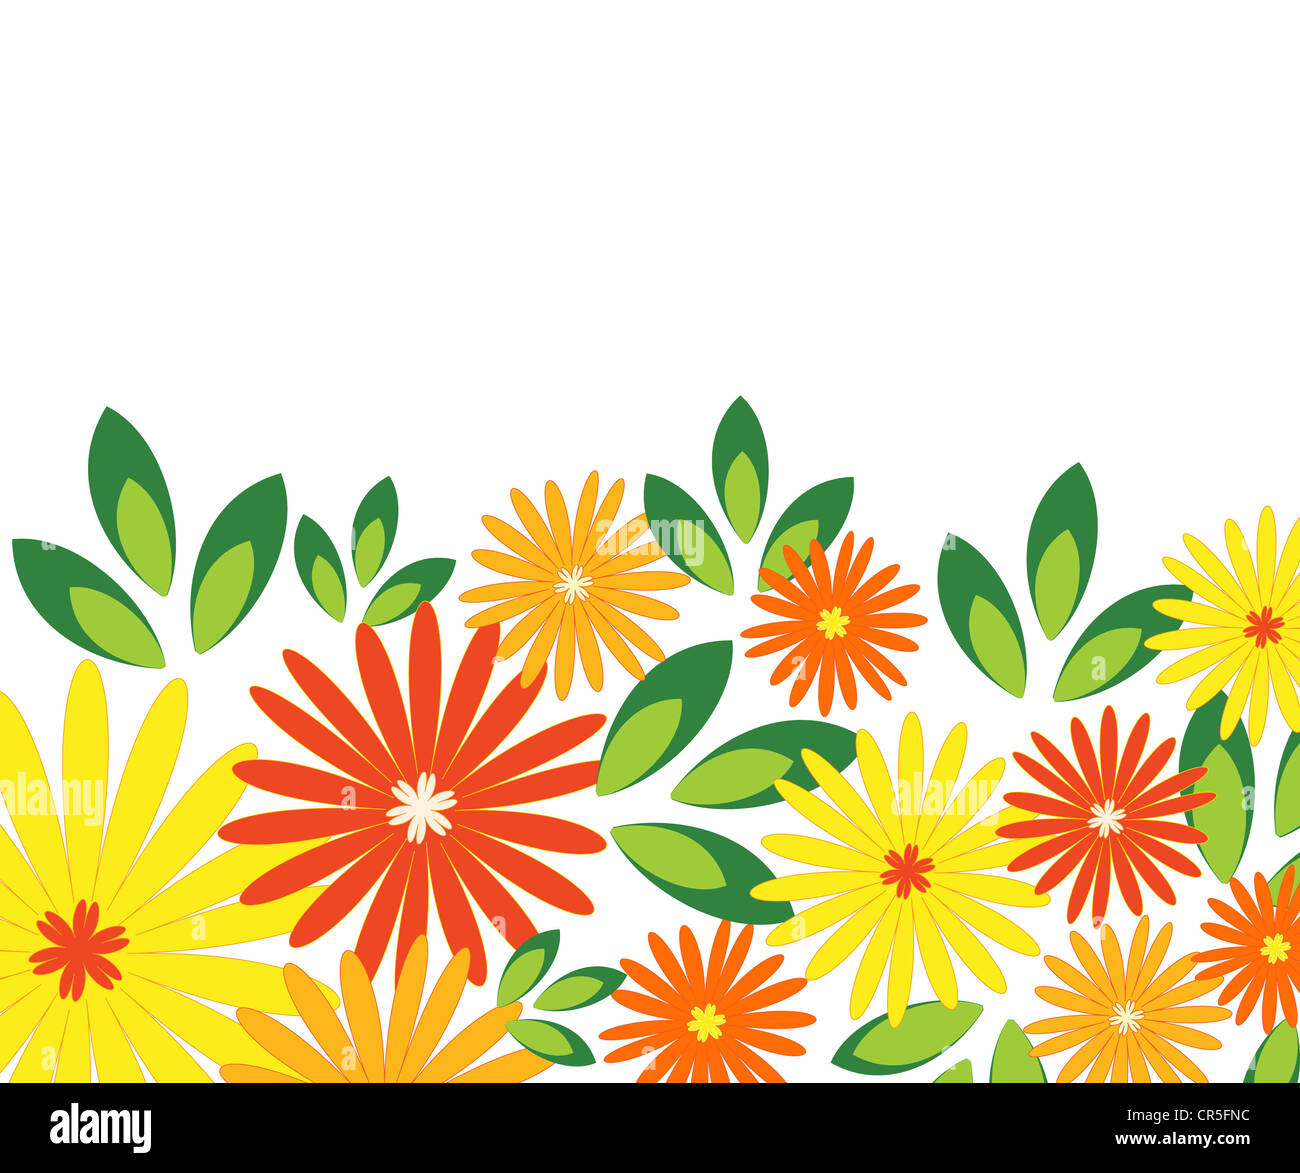 Floral and leaves pattern in bright orange, yellow and green colors Stock Photo